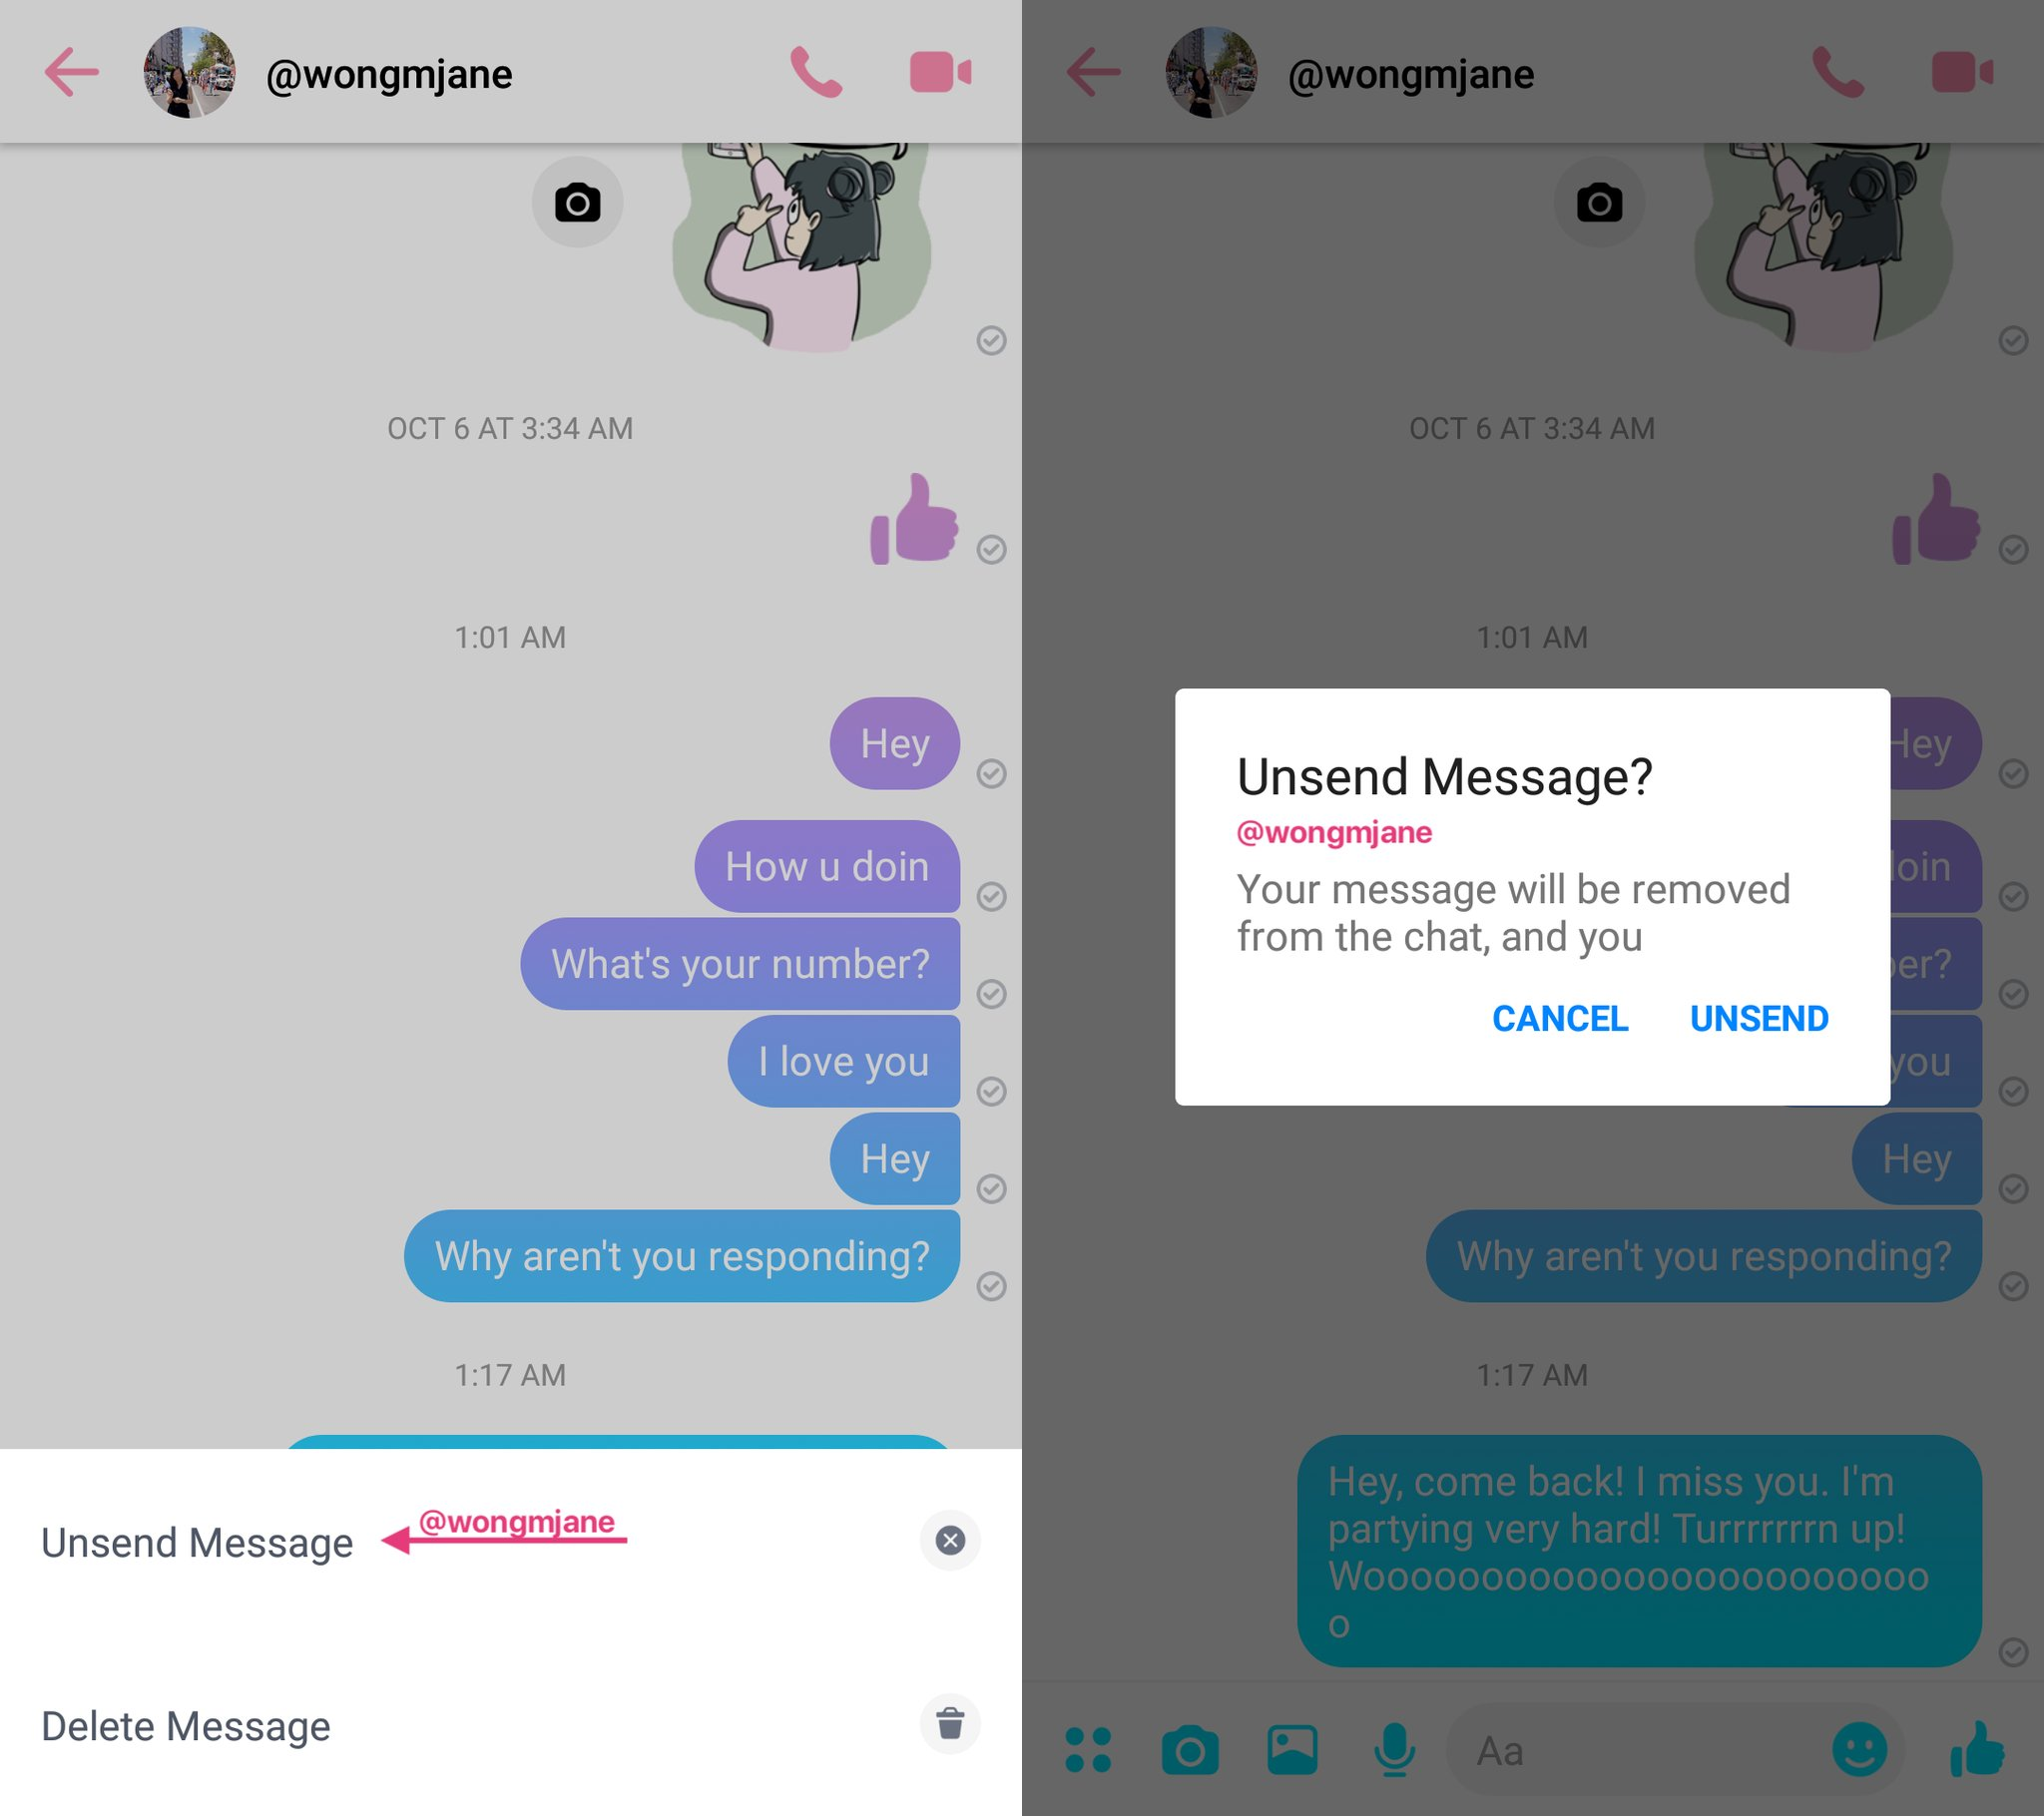 Facebook Messenger Unsend message feature leaks in images